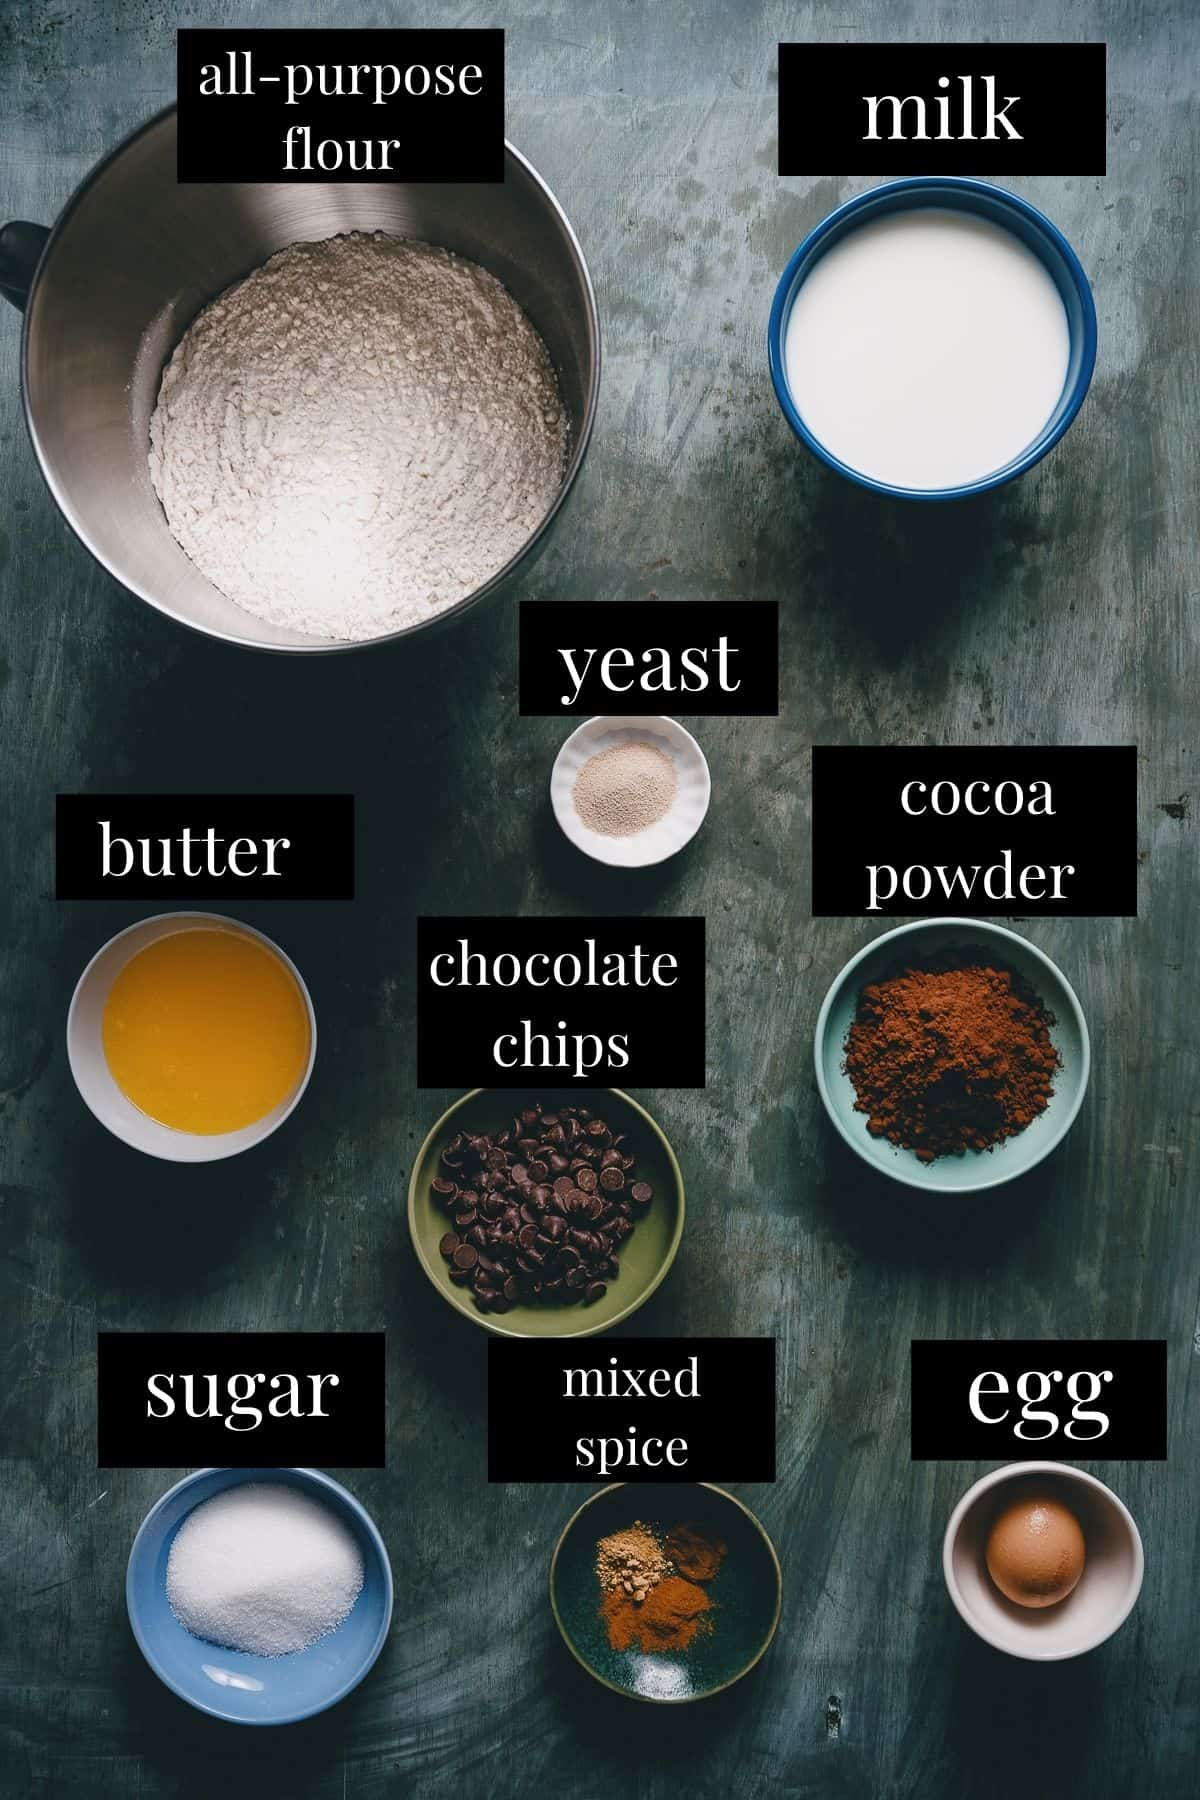 bowls of ingredients used to make chocolate hot cross buns on a dark background